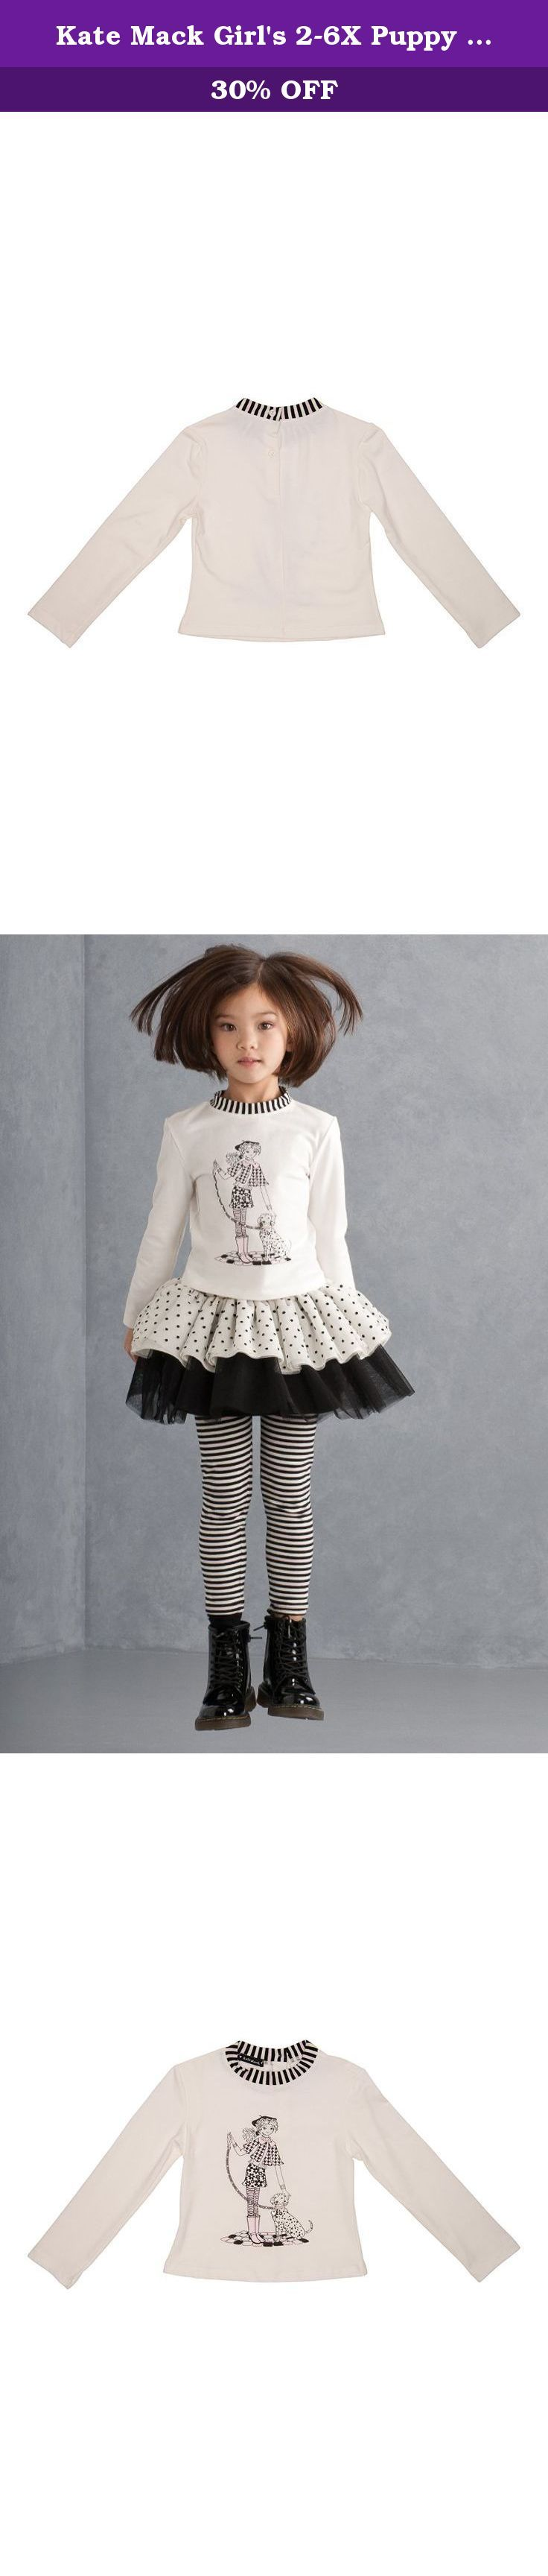 Kate Mack Girl's 2-6X Puppy Love Tee - Size 6X, Ivory. The whimsical little girl and her puppy decorating this adorable tee shirt will put a smile on the face of your own little darling. Stripes framing the neckline and tiny pearl embellishments add an extra measure of charming detail.